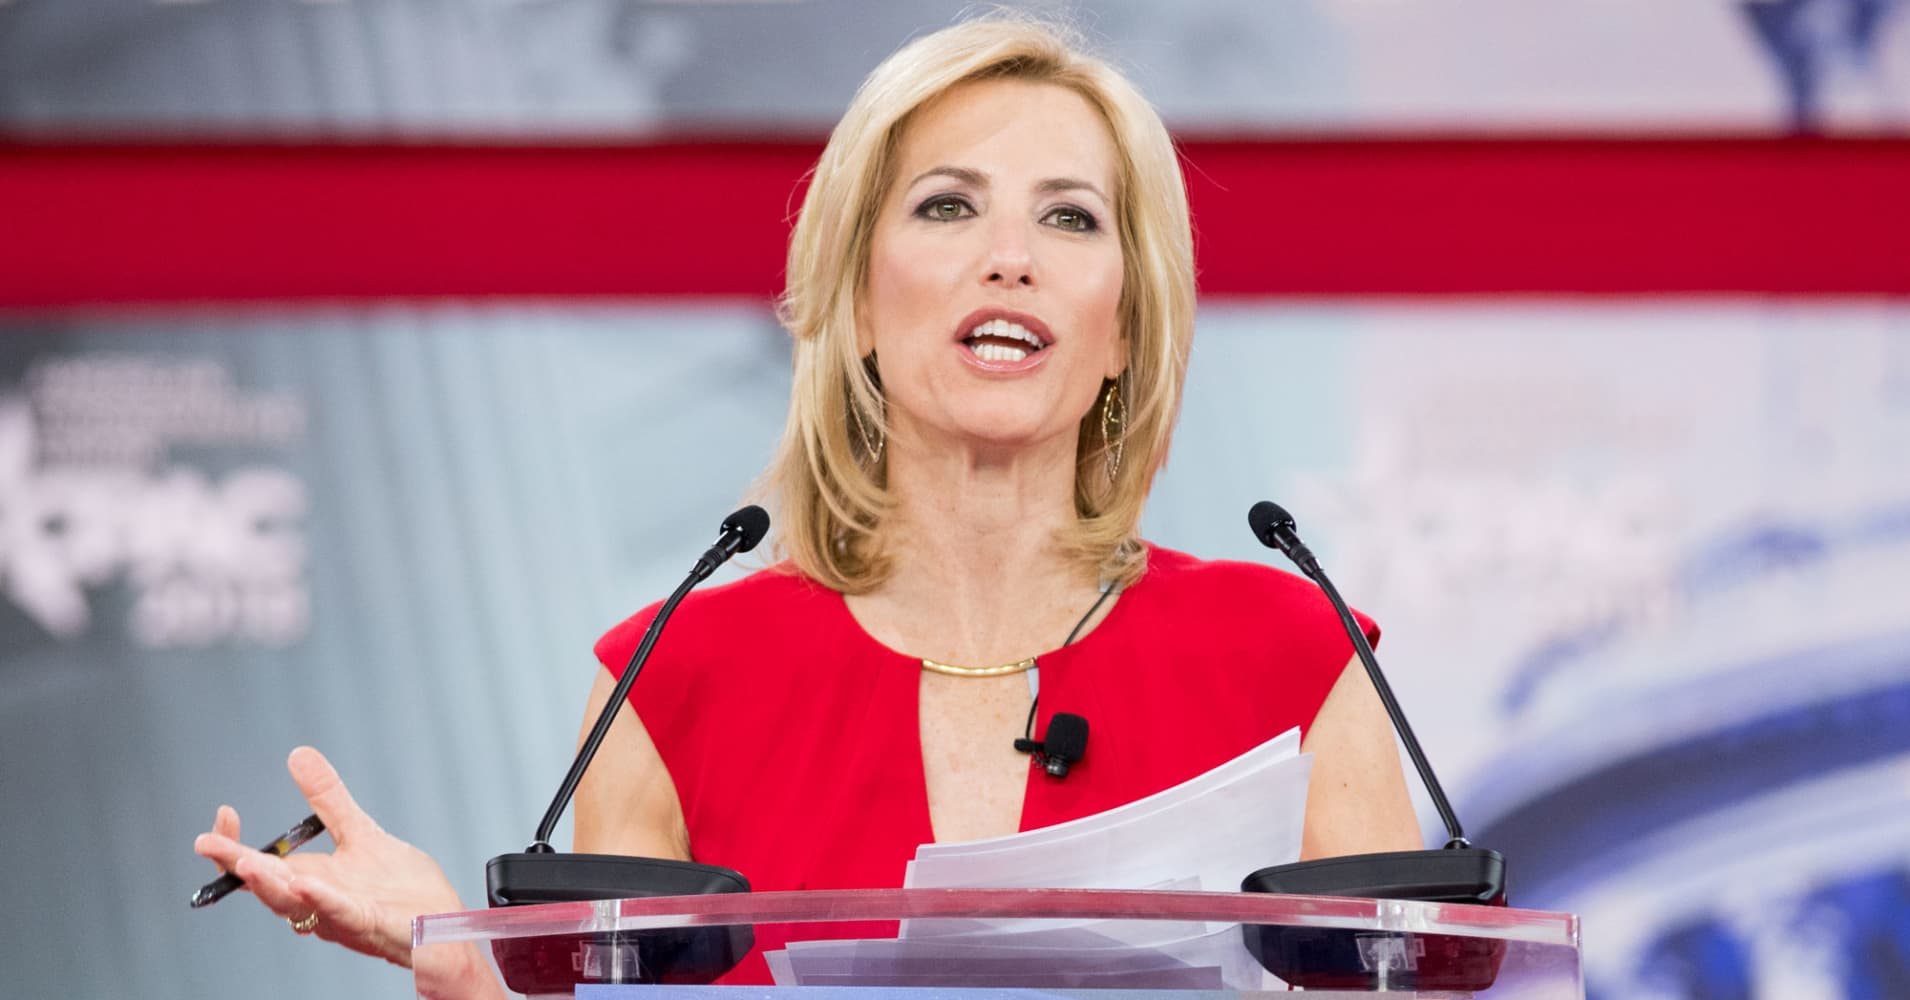 Fox News host Laura Ingraham goes on vacation as more advertisers dump her over Parkland tweet